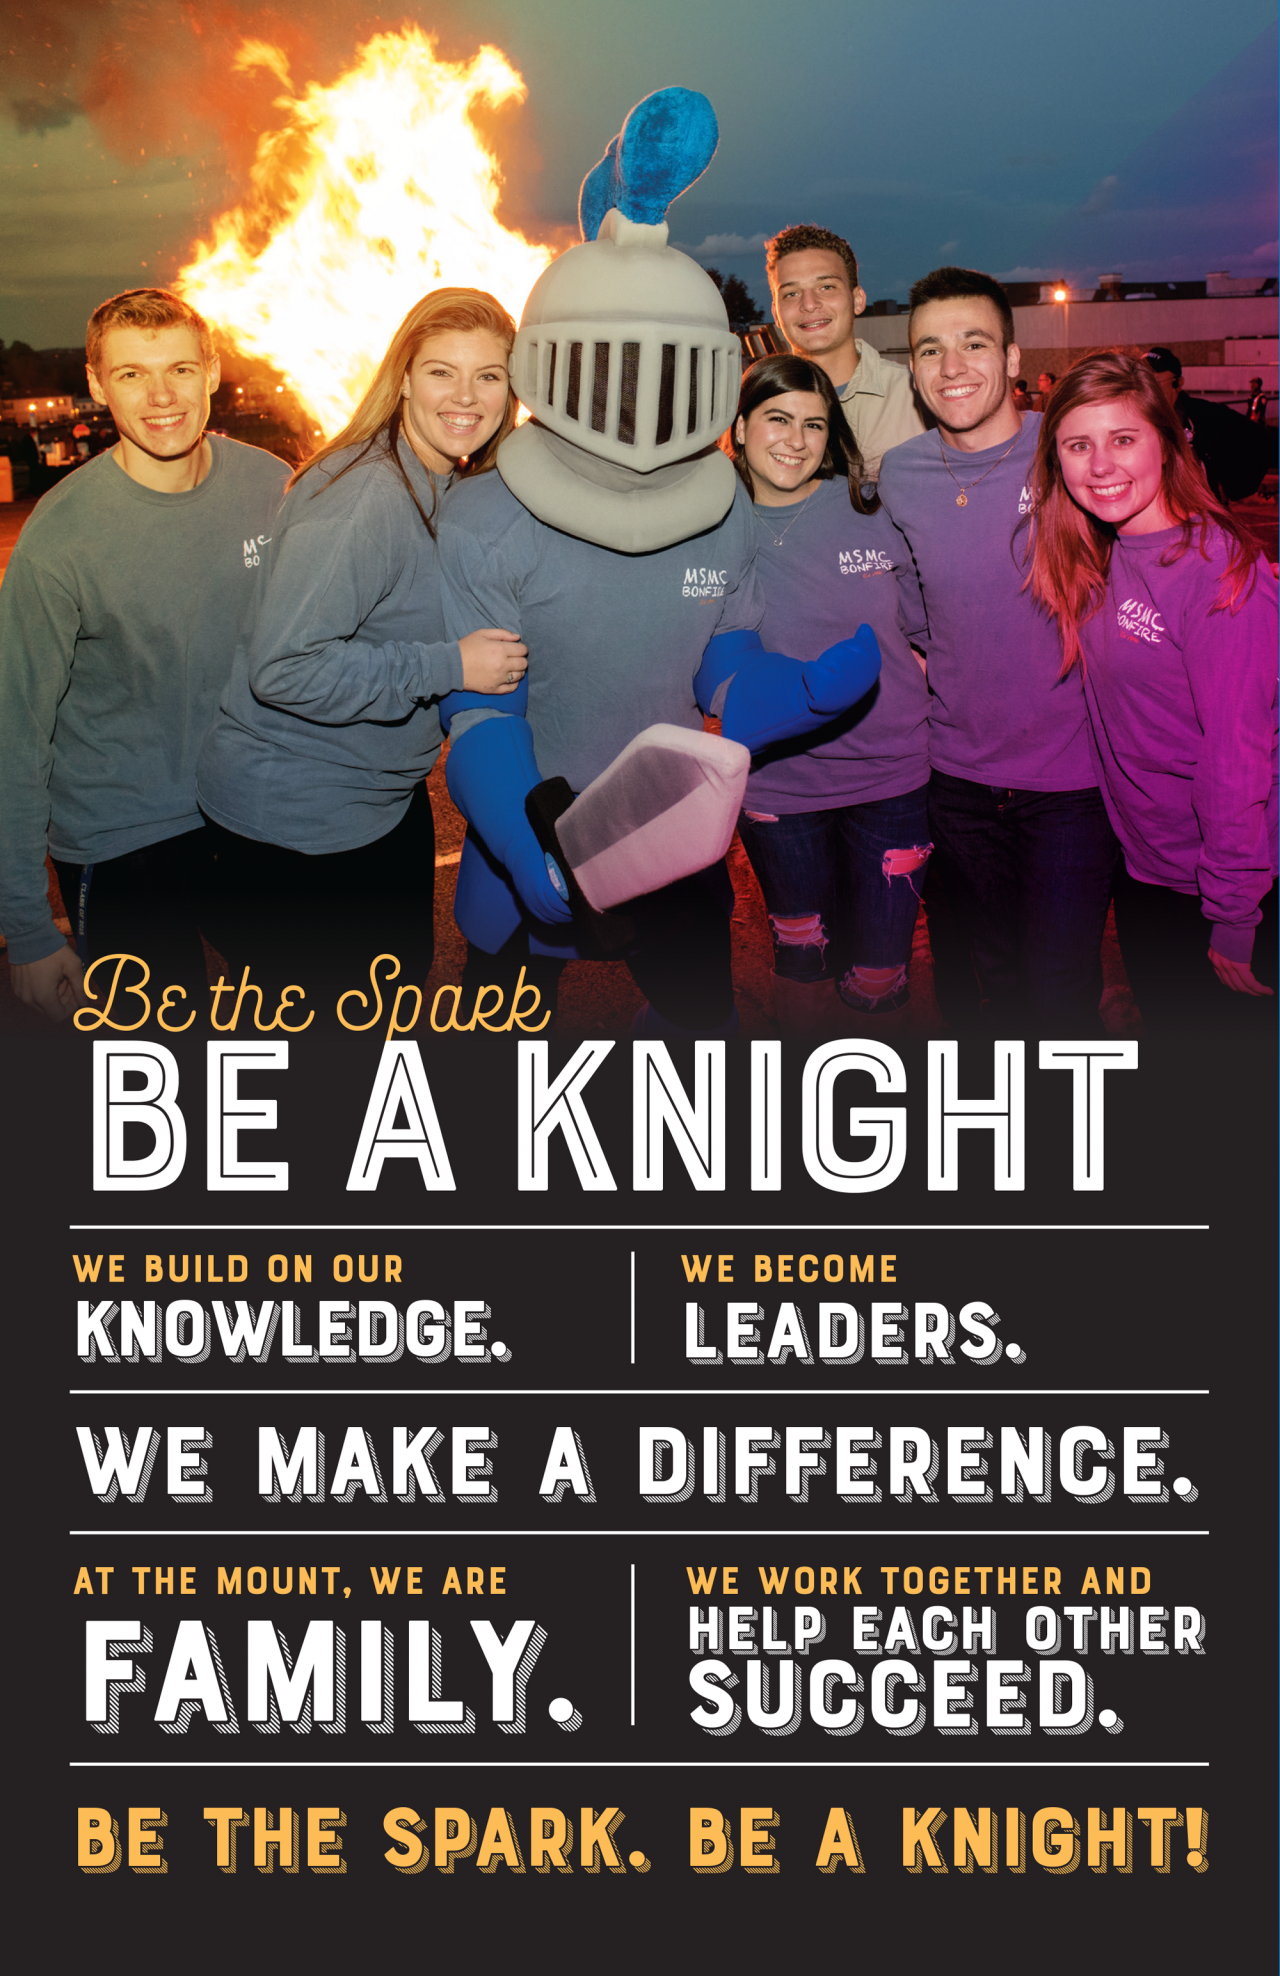 Be the Spark. Be a Knight.